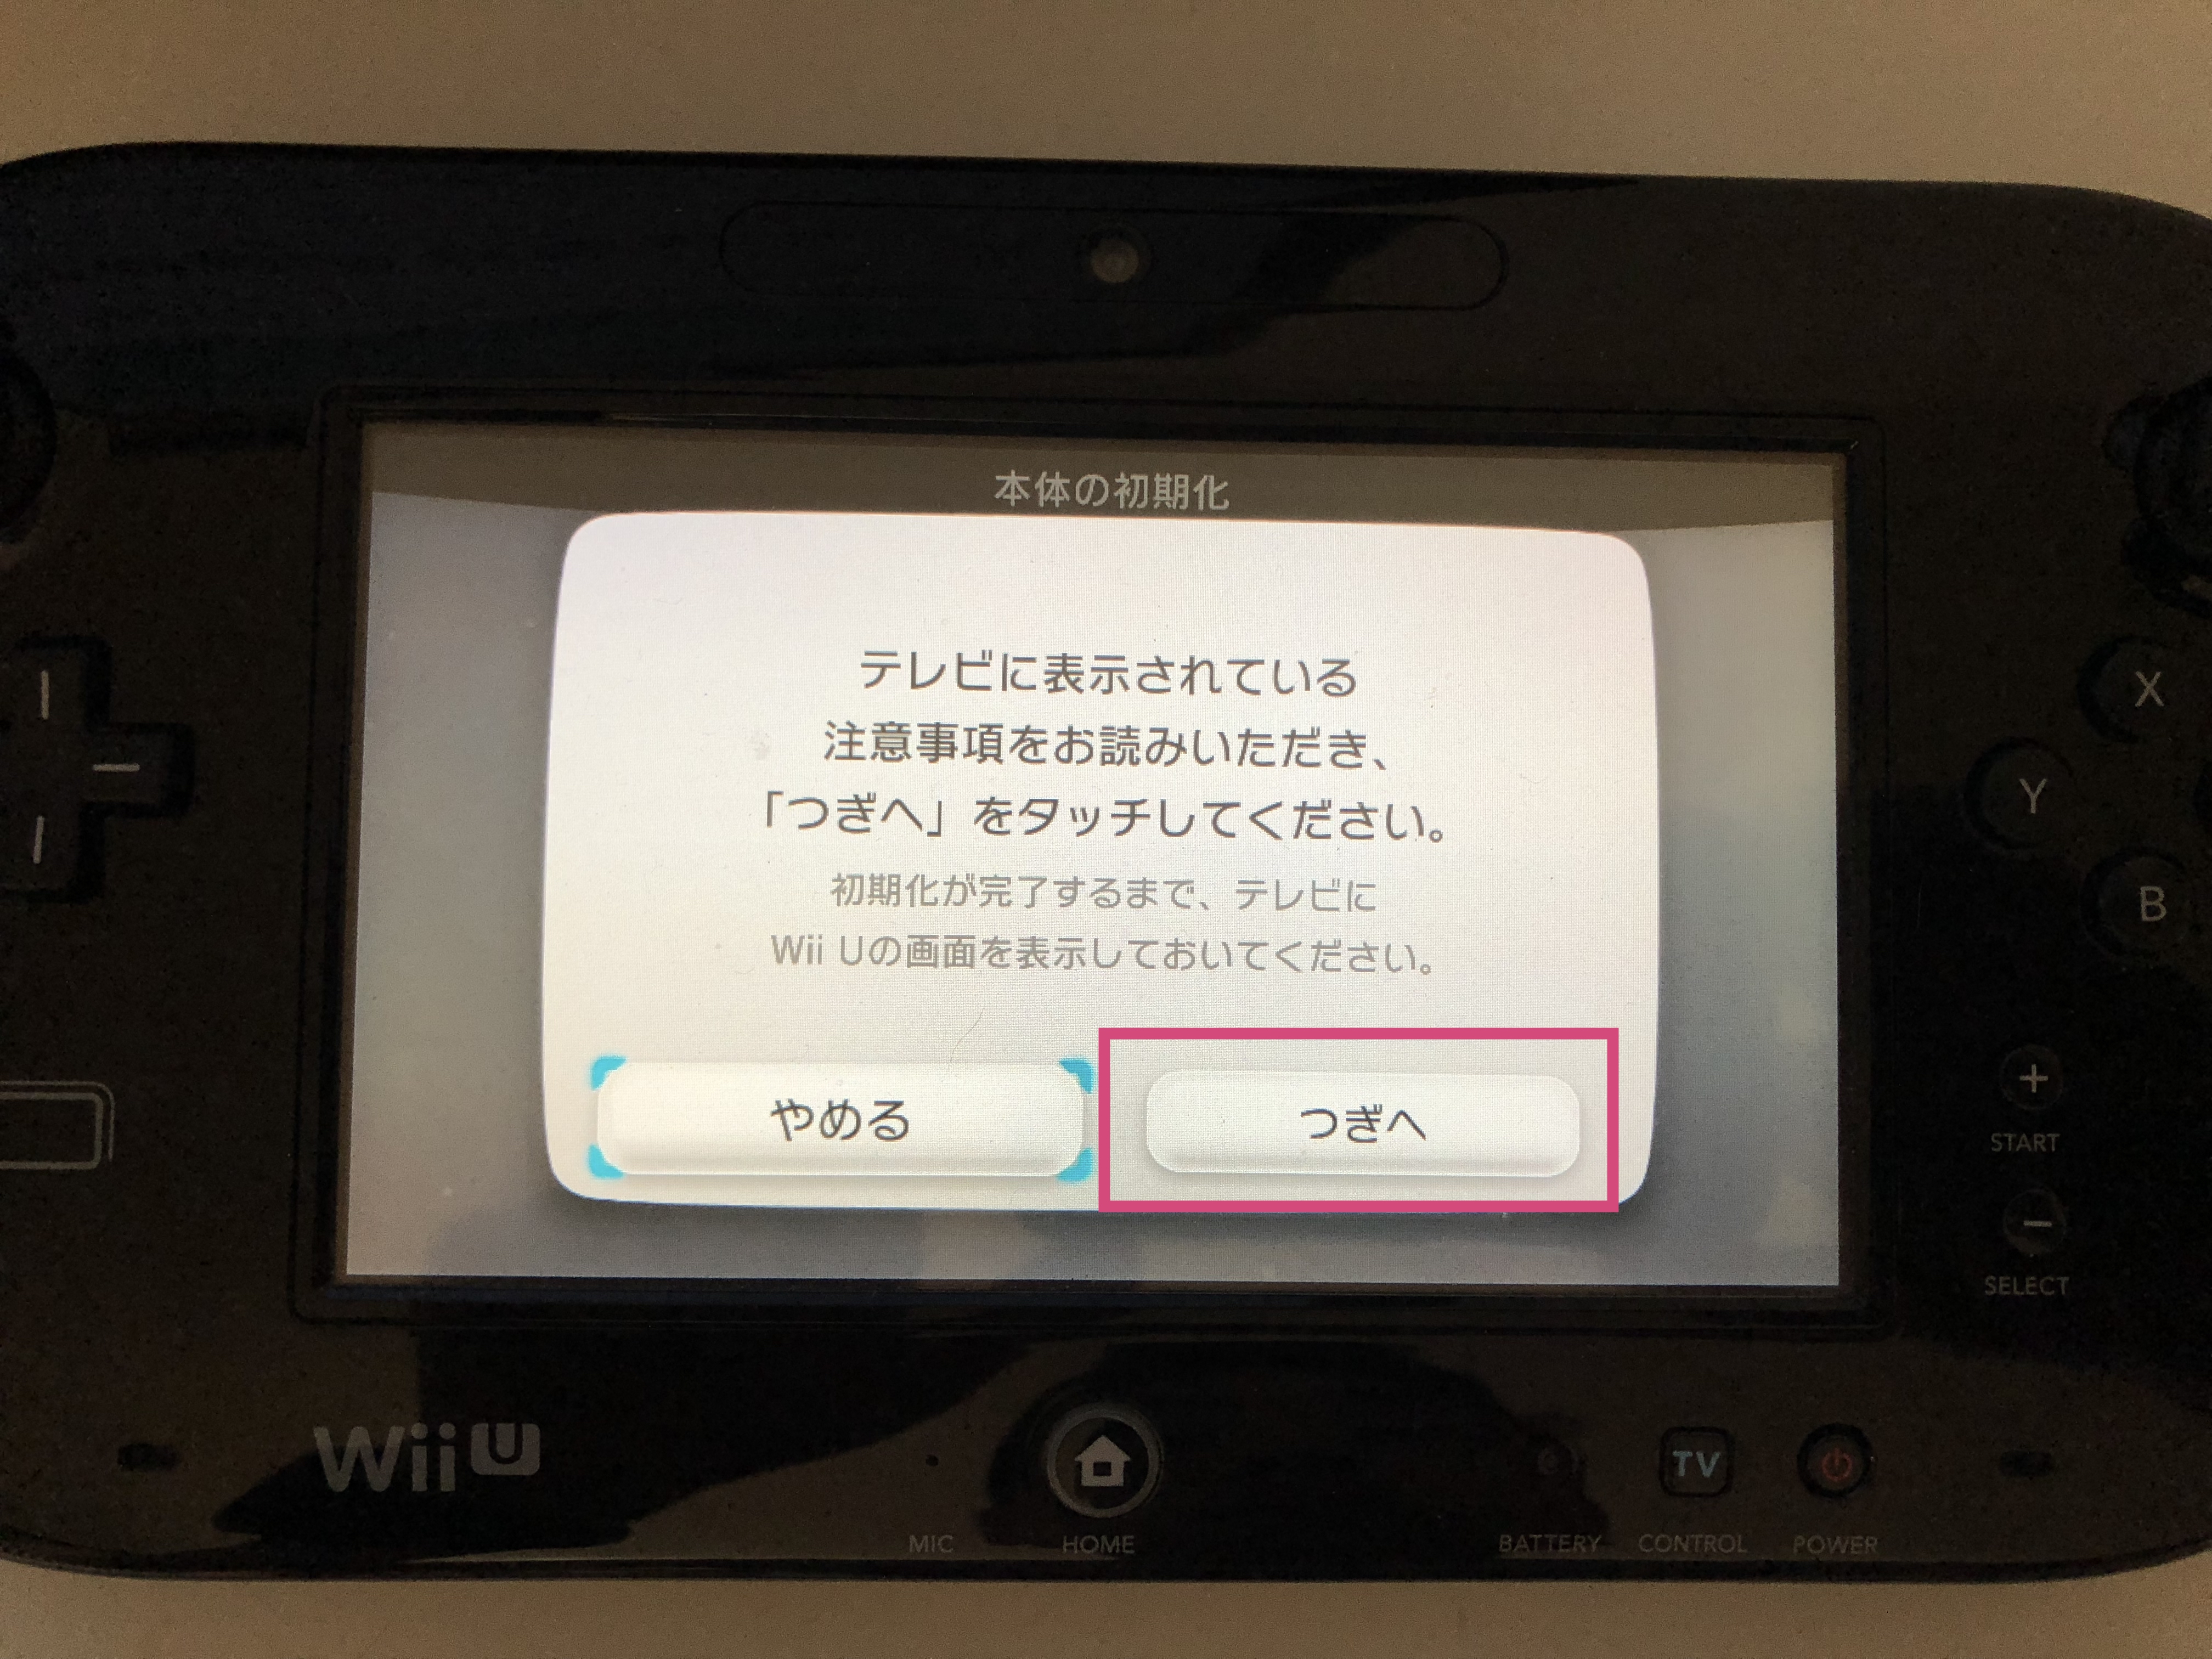 wii-u-data-formatting-wii-shopping-channel-dont-forget-4